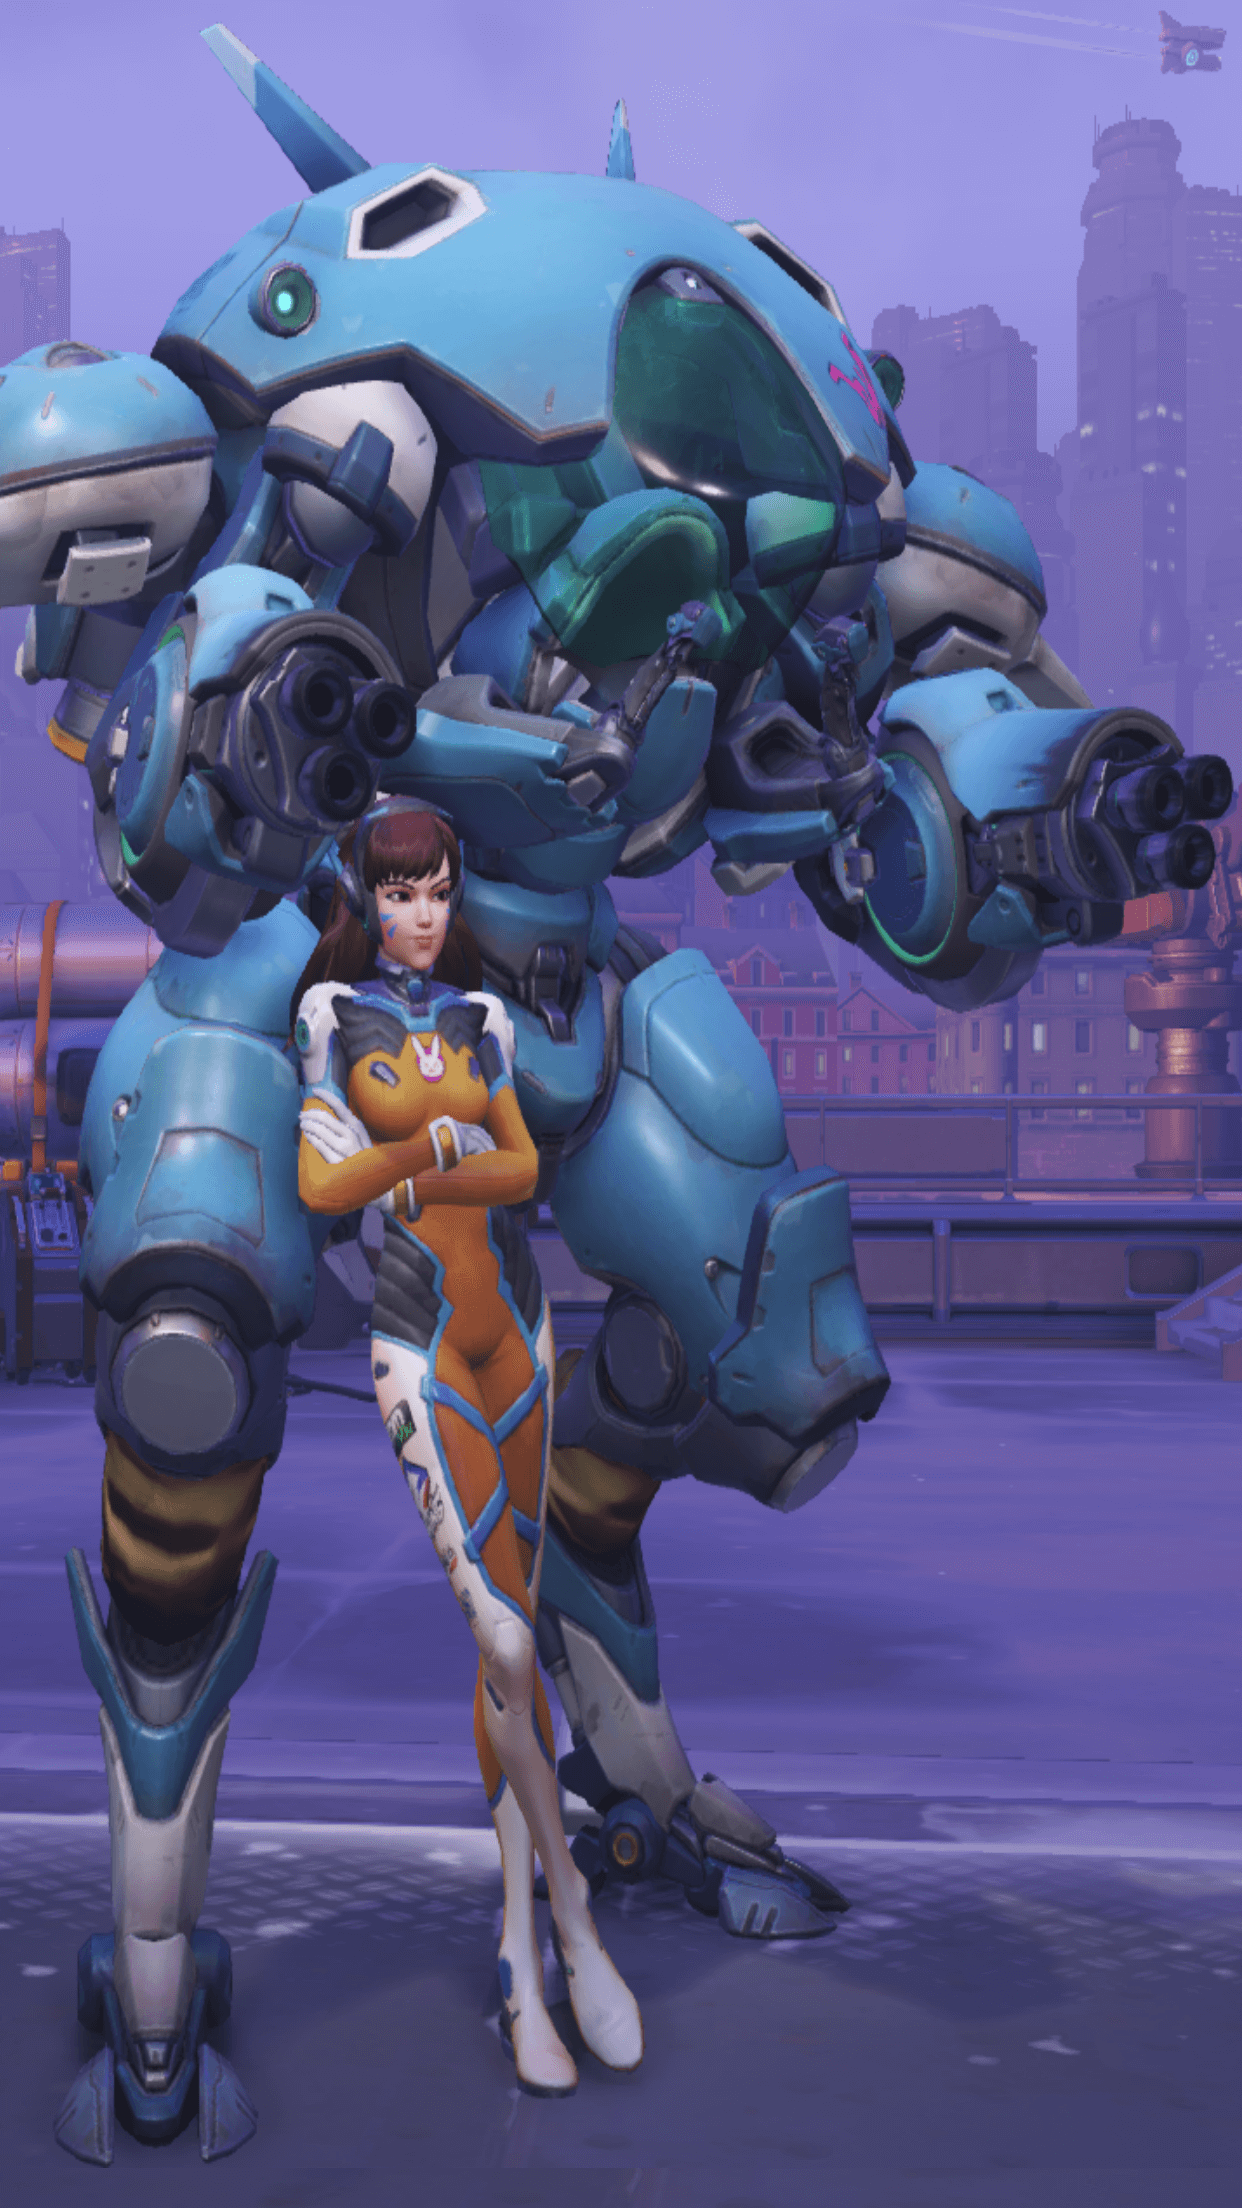 Overwatch Iphone 6 Wallpapers Dragon Blogger Technology